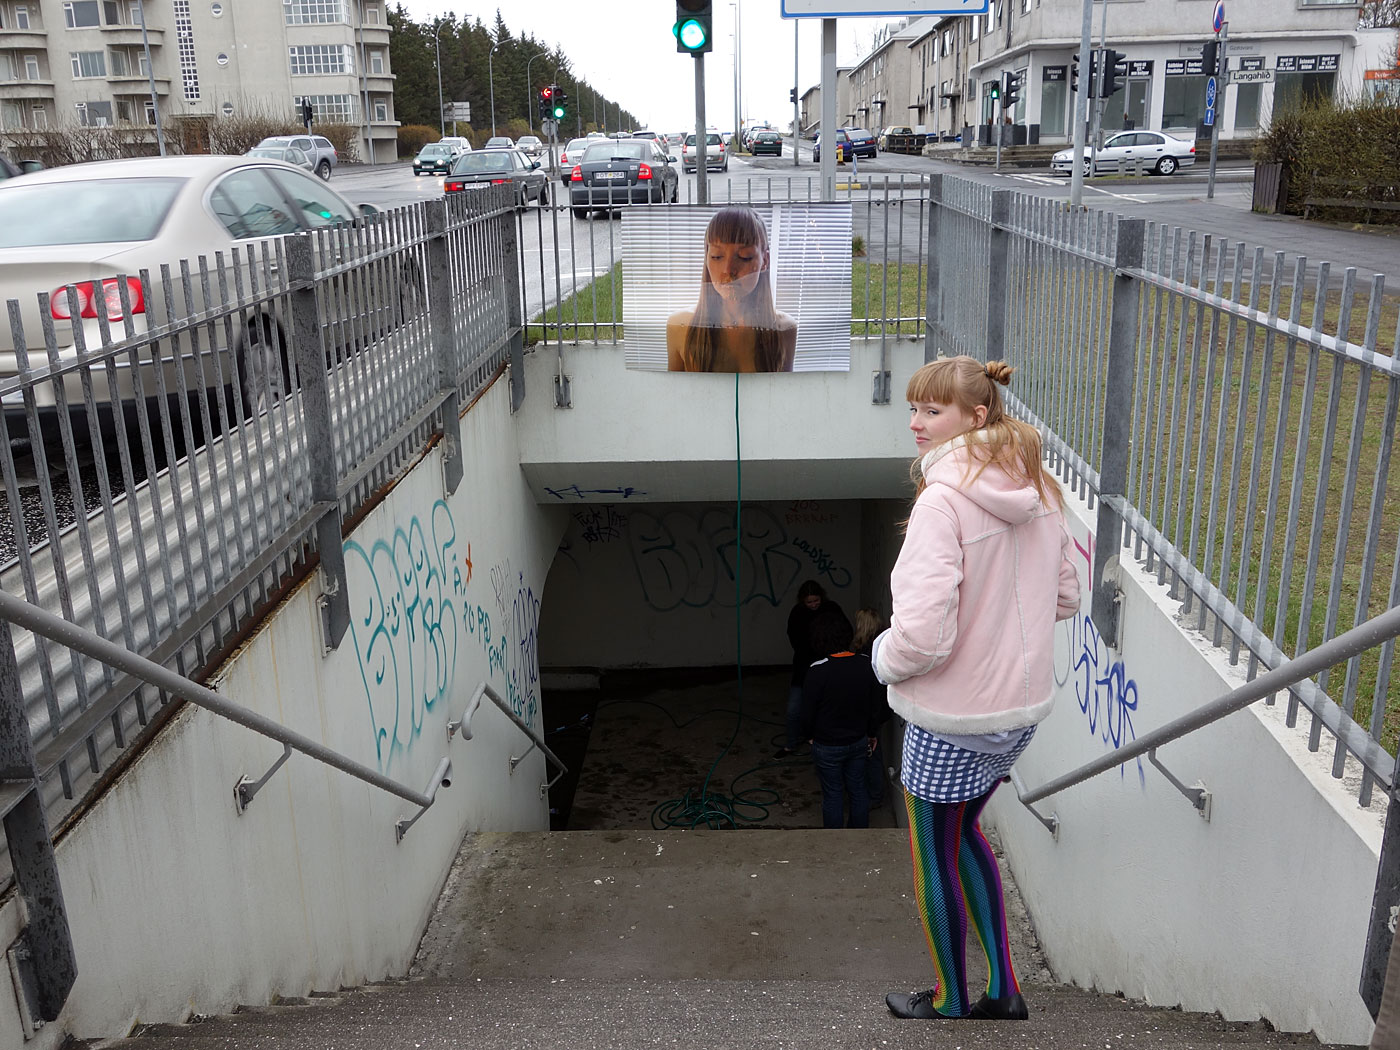 Reykjavík. 'Avant-garður 3' under a street. - The entrance to the underpass for pedestrians - or to the exhibition '<a href='https://www.facebook.com/events/142453915939739/' target='_blank' class='linksnormal'>Avant-garður 3</a>' by  Solveig Thoroddsen and Margrét Sesseljudóttir (right). It was standing for (just) 2 hours - from 4 pm until 6 pm under Miklabraut street. Garður = garden. (11 May 2013)